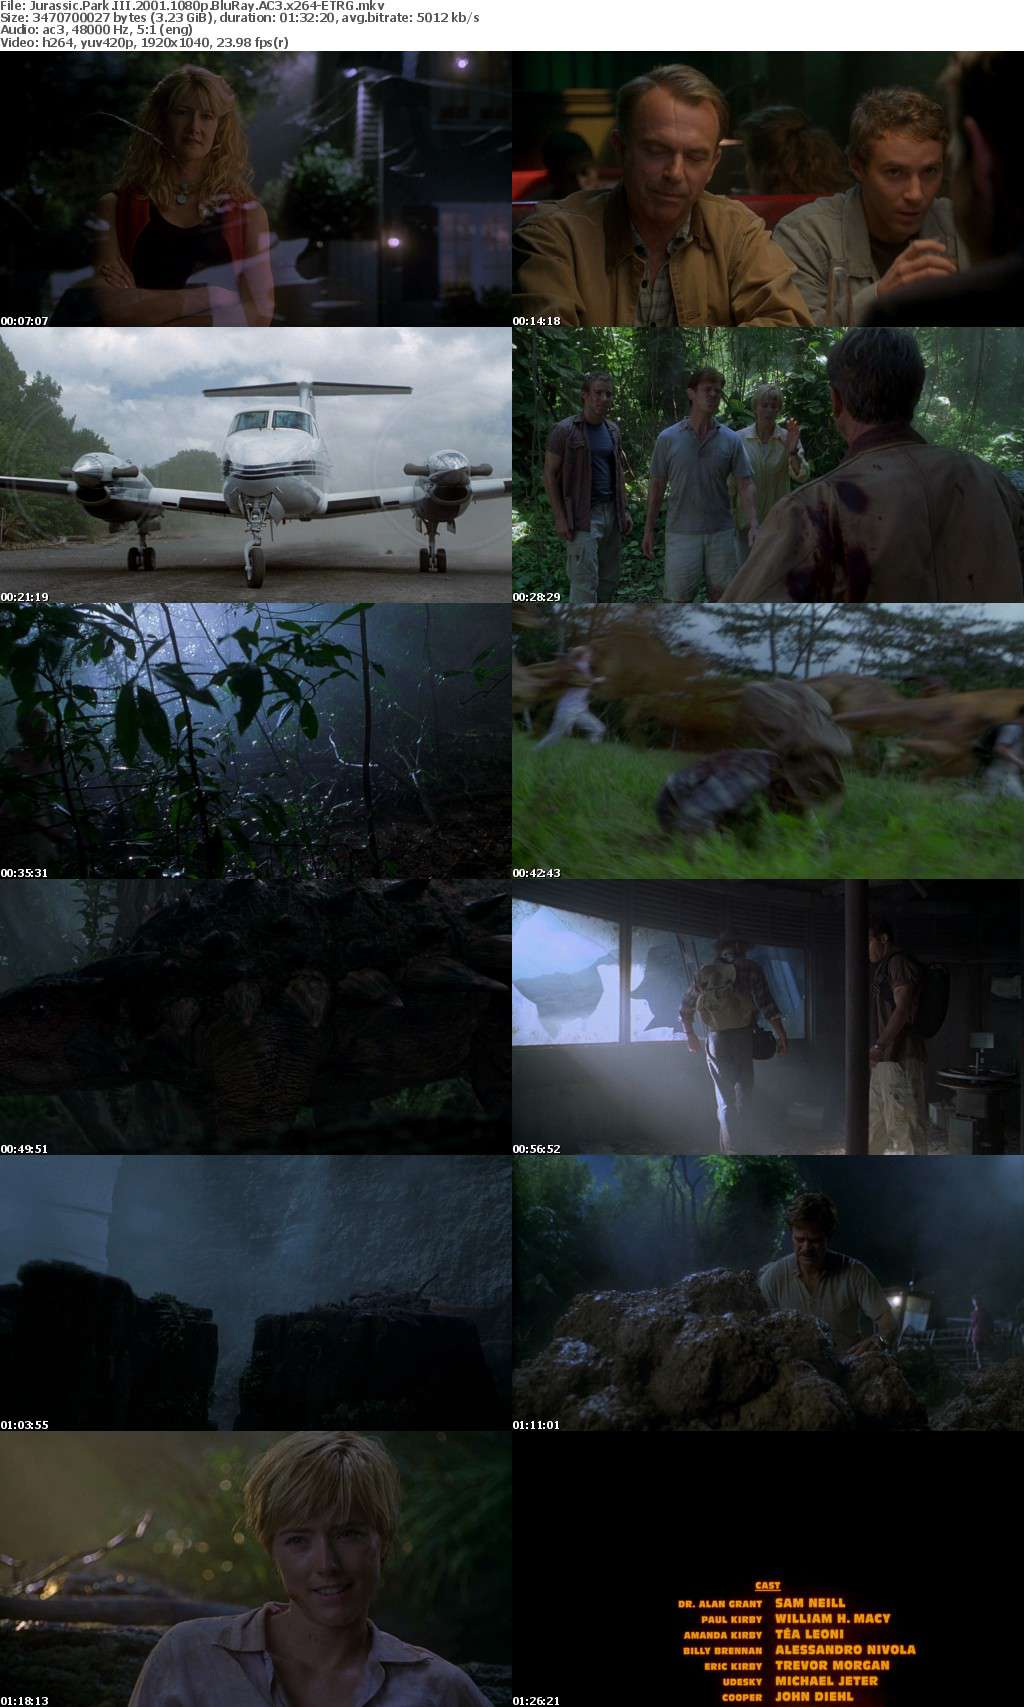 Jurassic Park Collection 1080p BluRay AC3 x264-ETRG